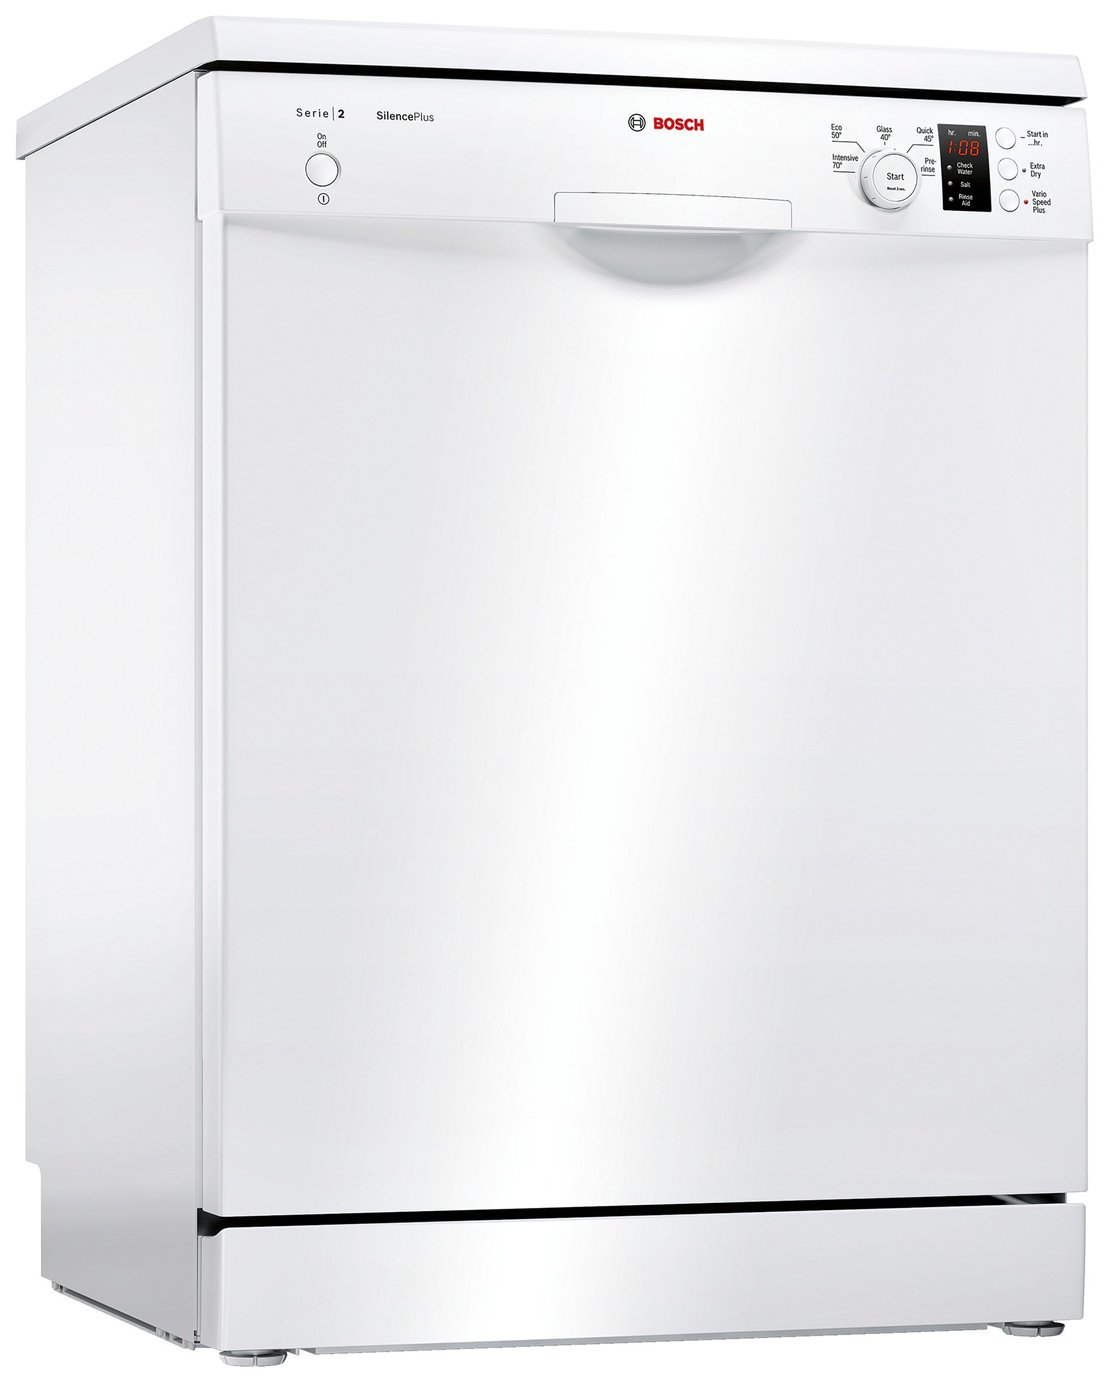 Dishwasher Dimensions Inches Bosch Spv40c10gb Slimline Integrated Dishwasher Dishwashers